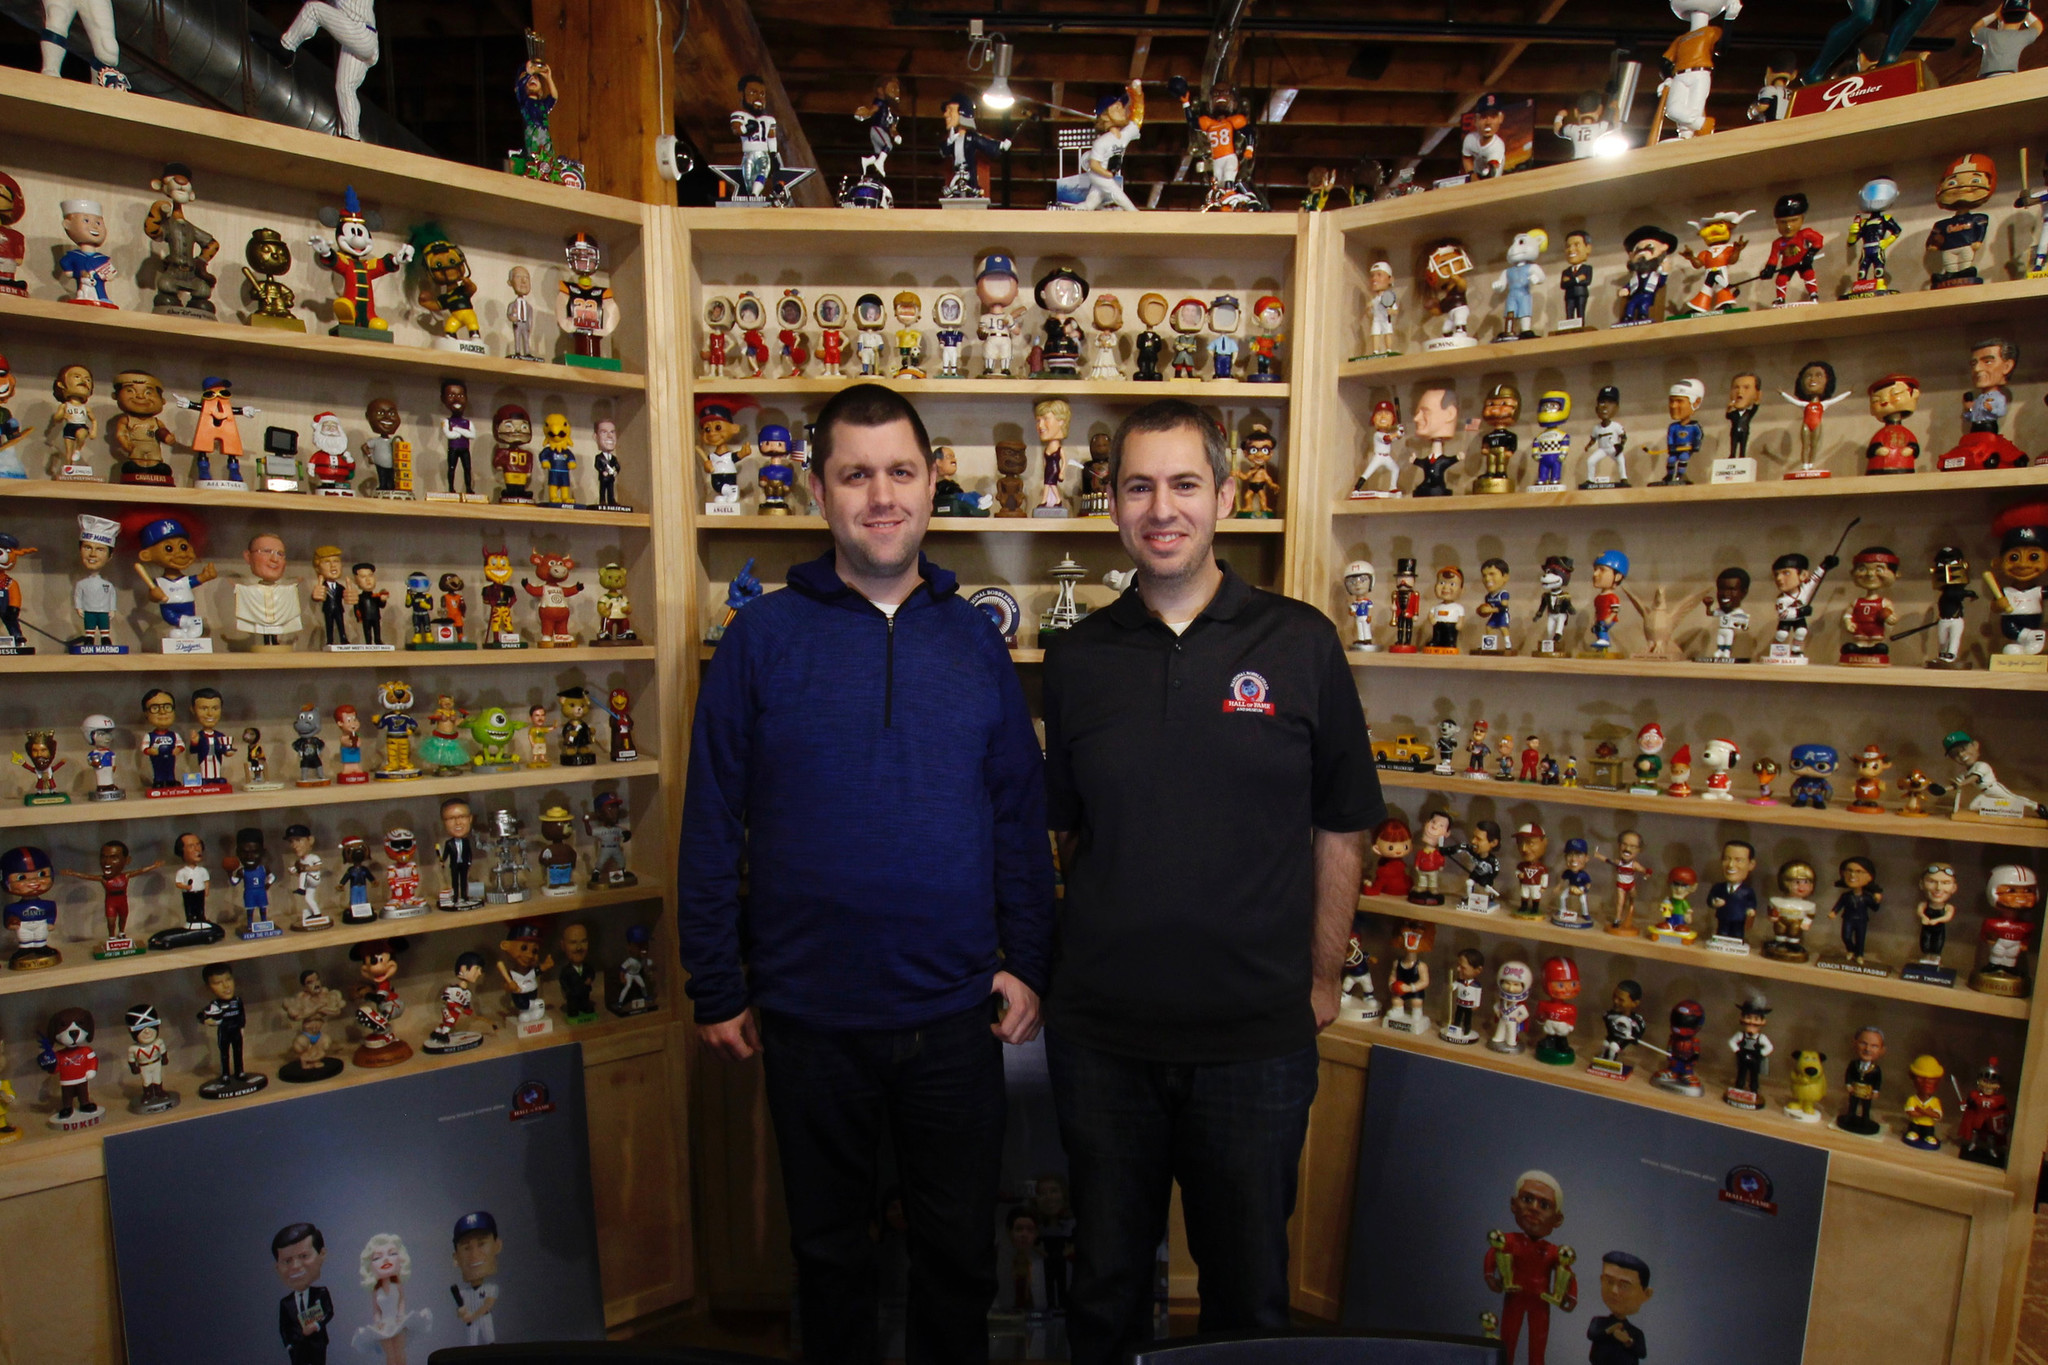 Milwaukee museum features thousands of bobbleheads